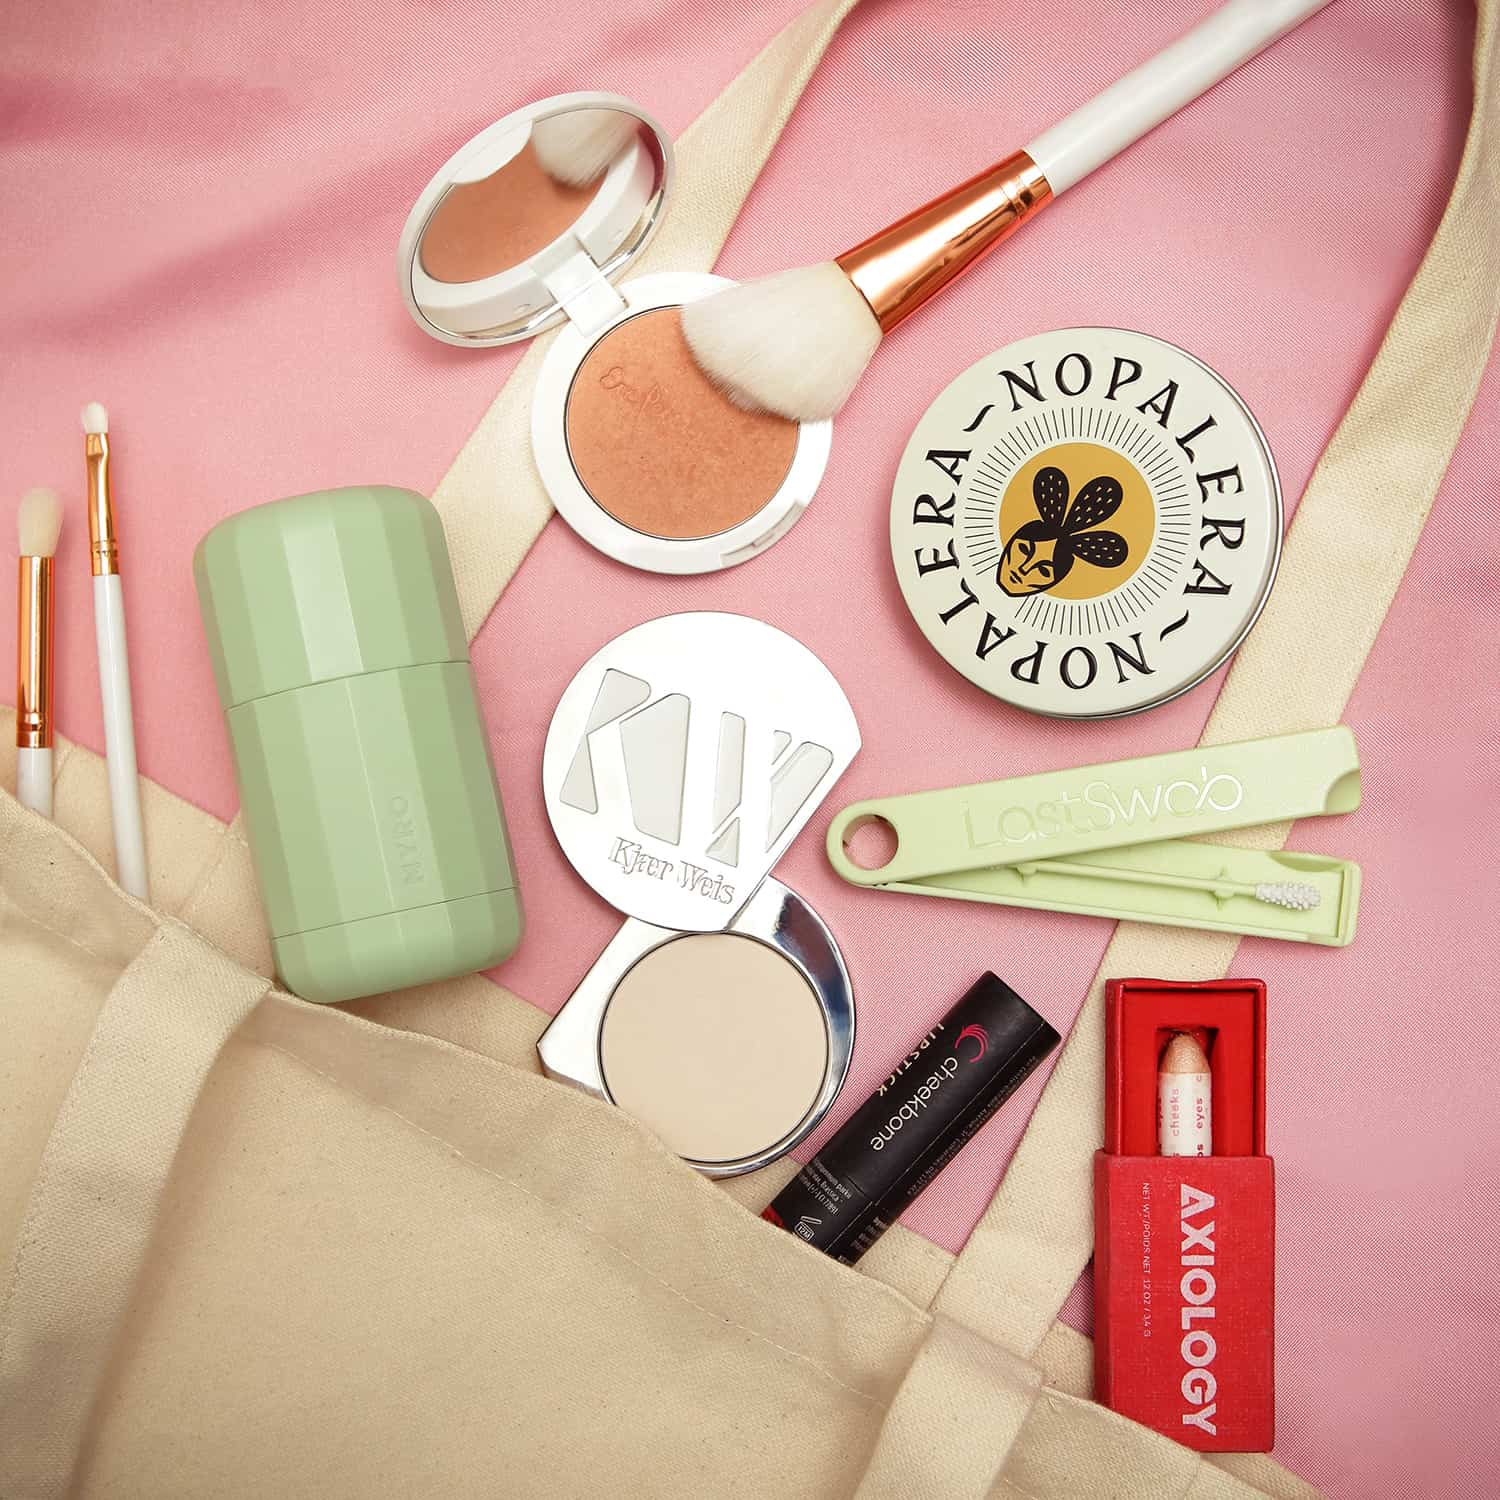 7 Beauty Brands To Get You Started On a Low-Waste Journey